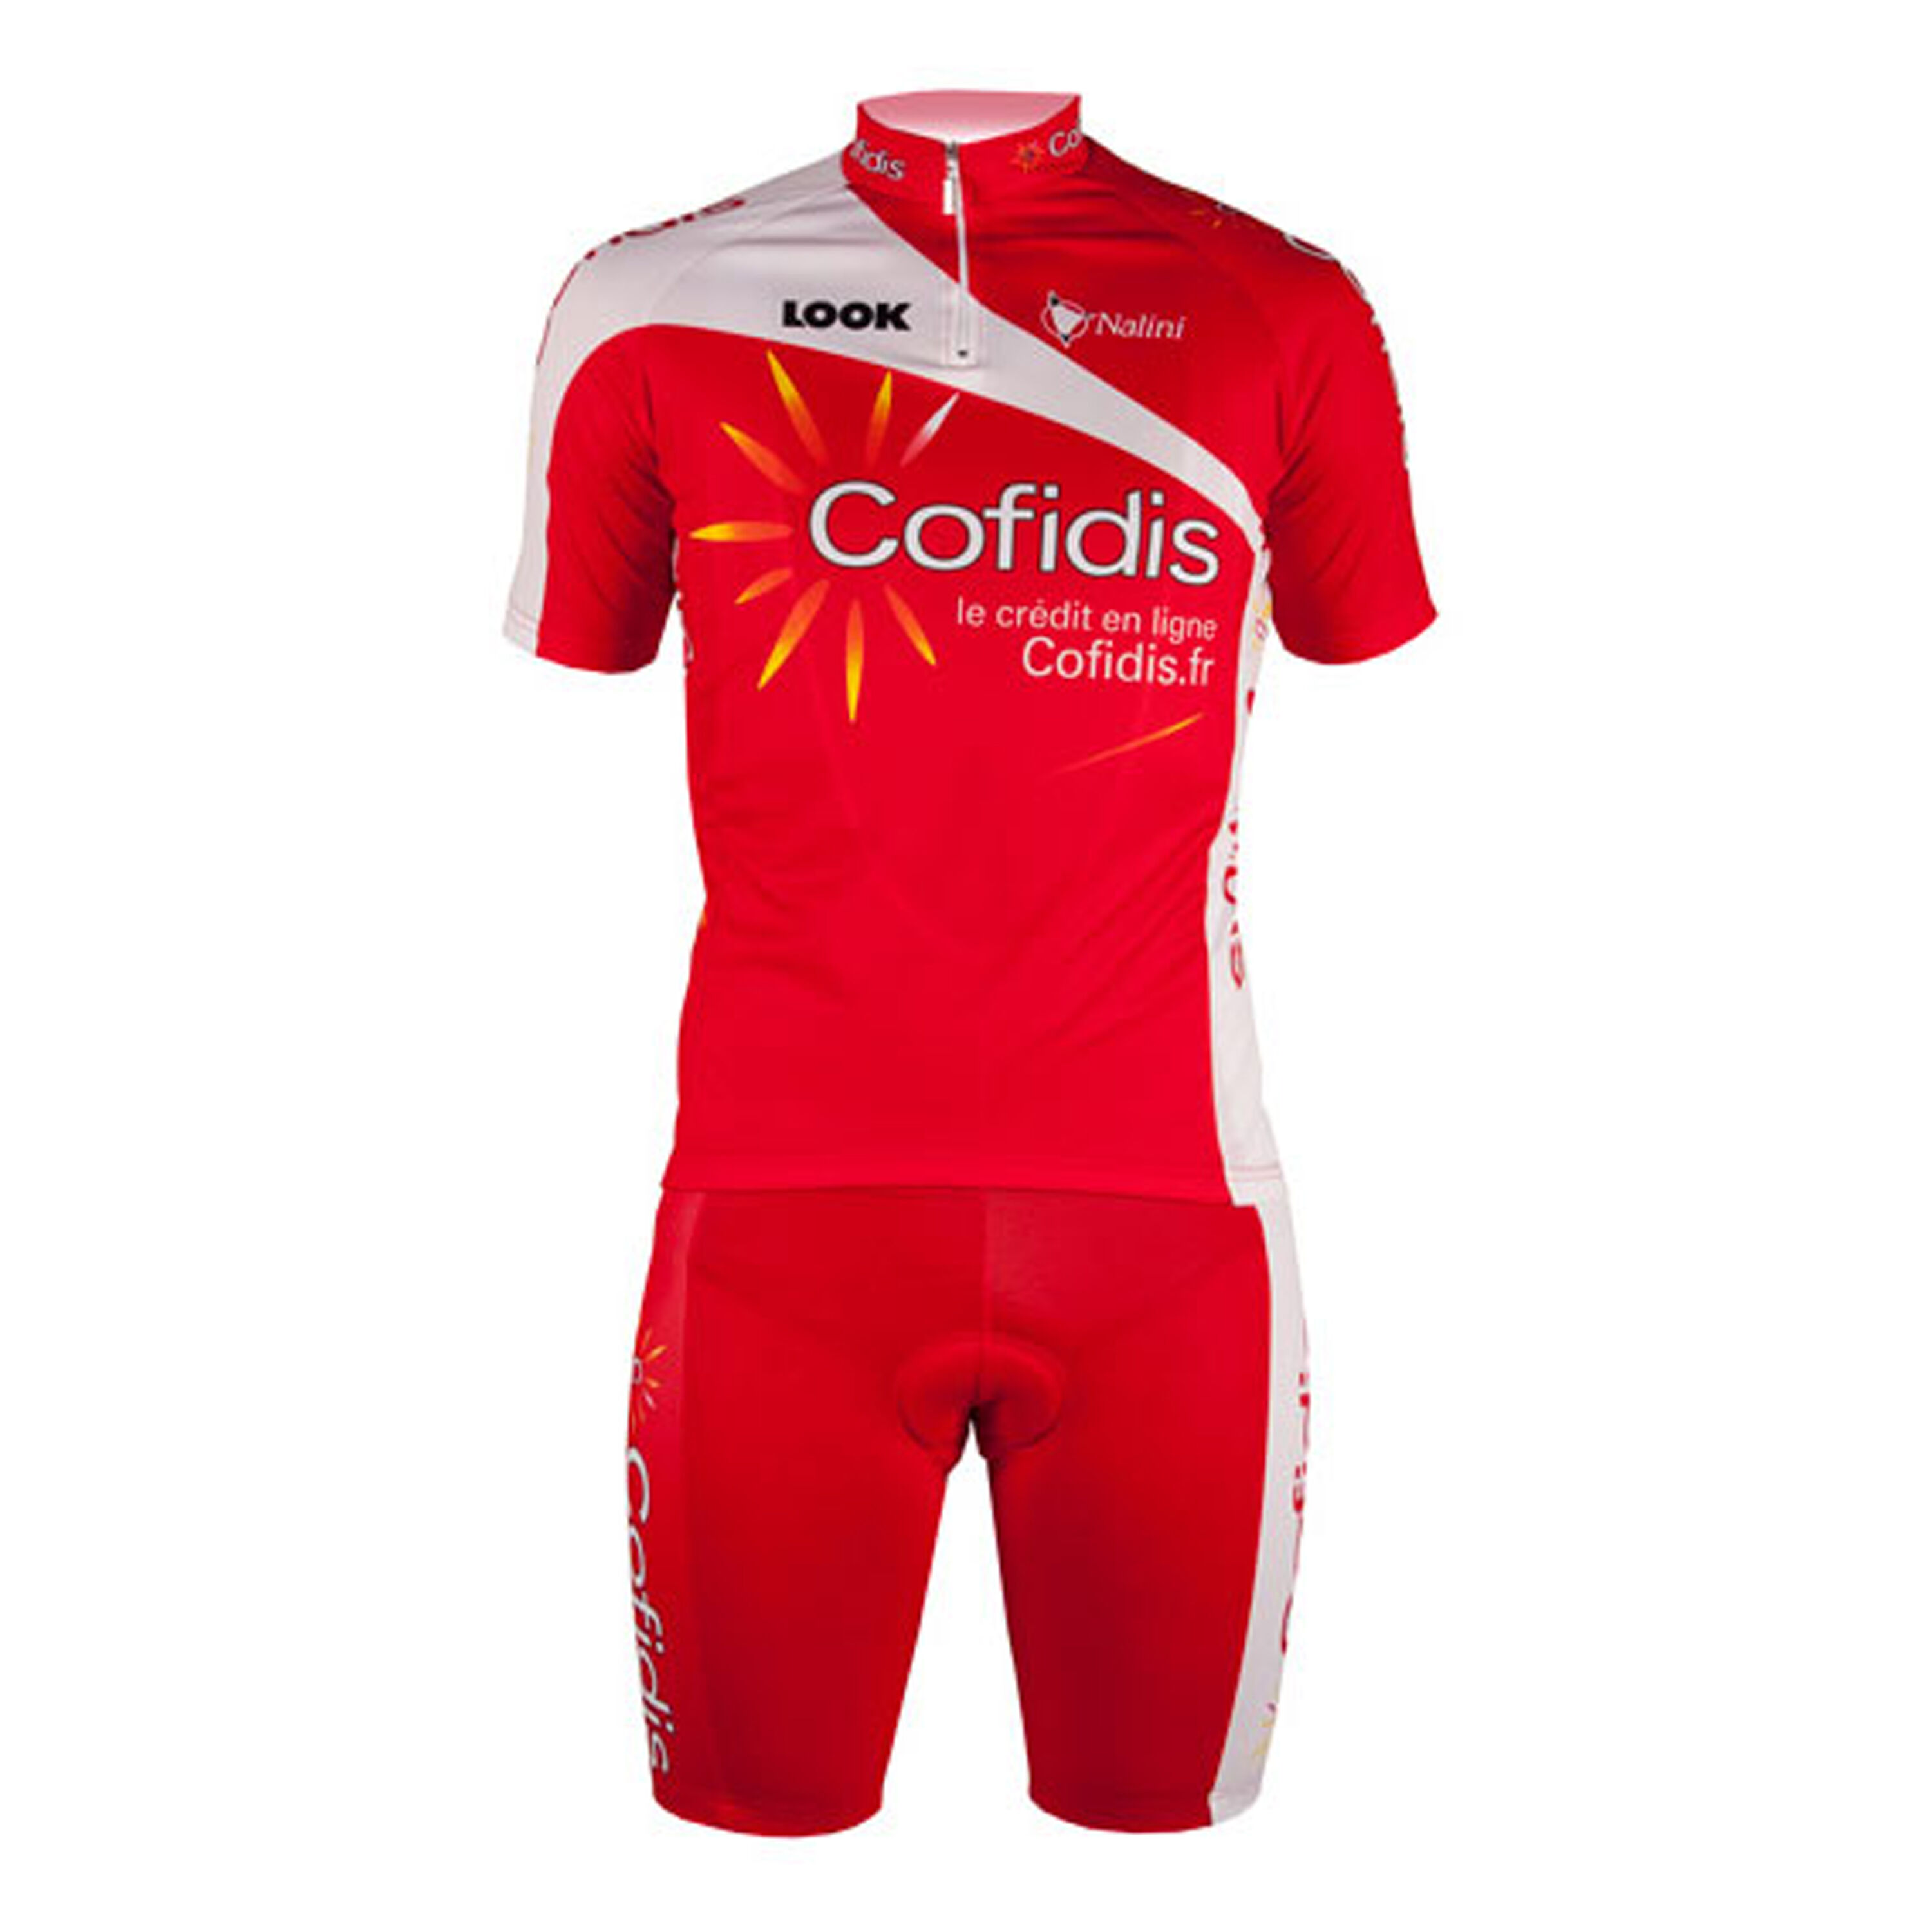 Nalini team Cofidis kit. Brand  Nalini. Be the first to review this product 4bd3541d7